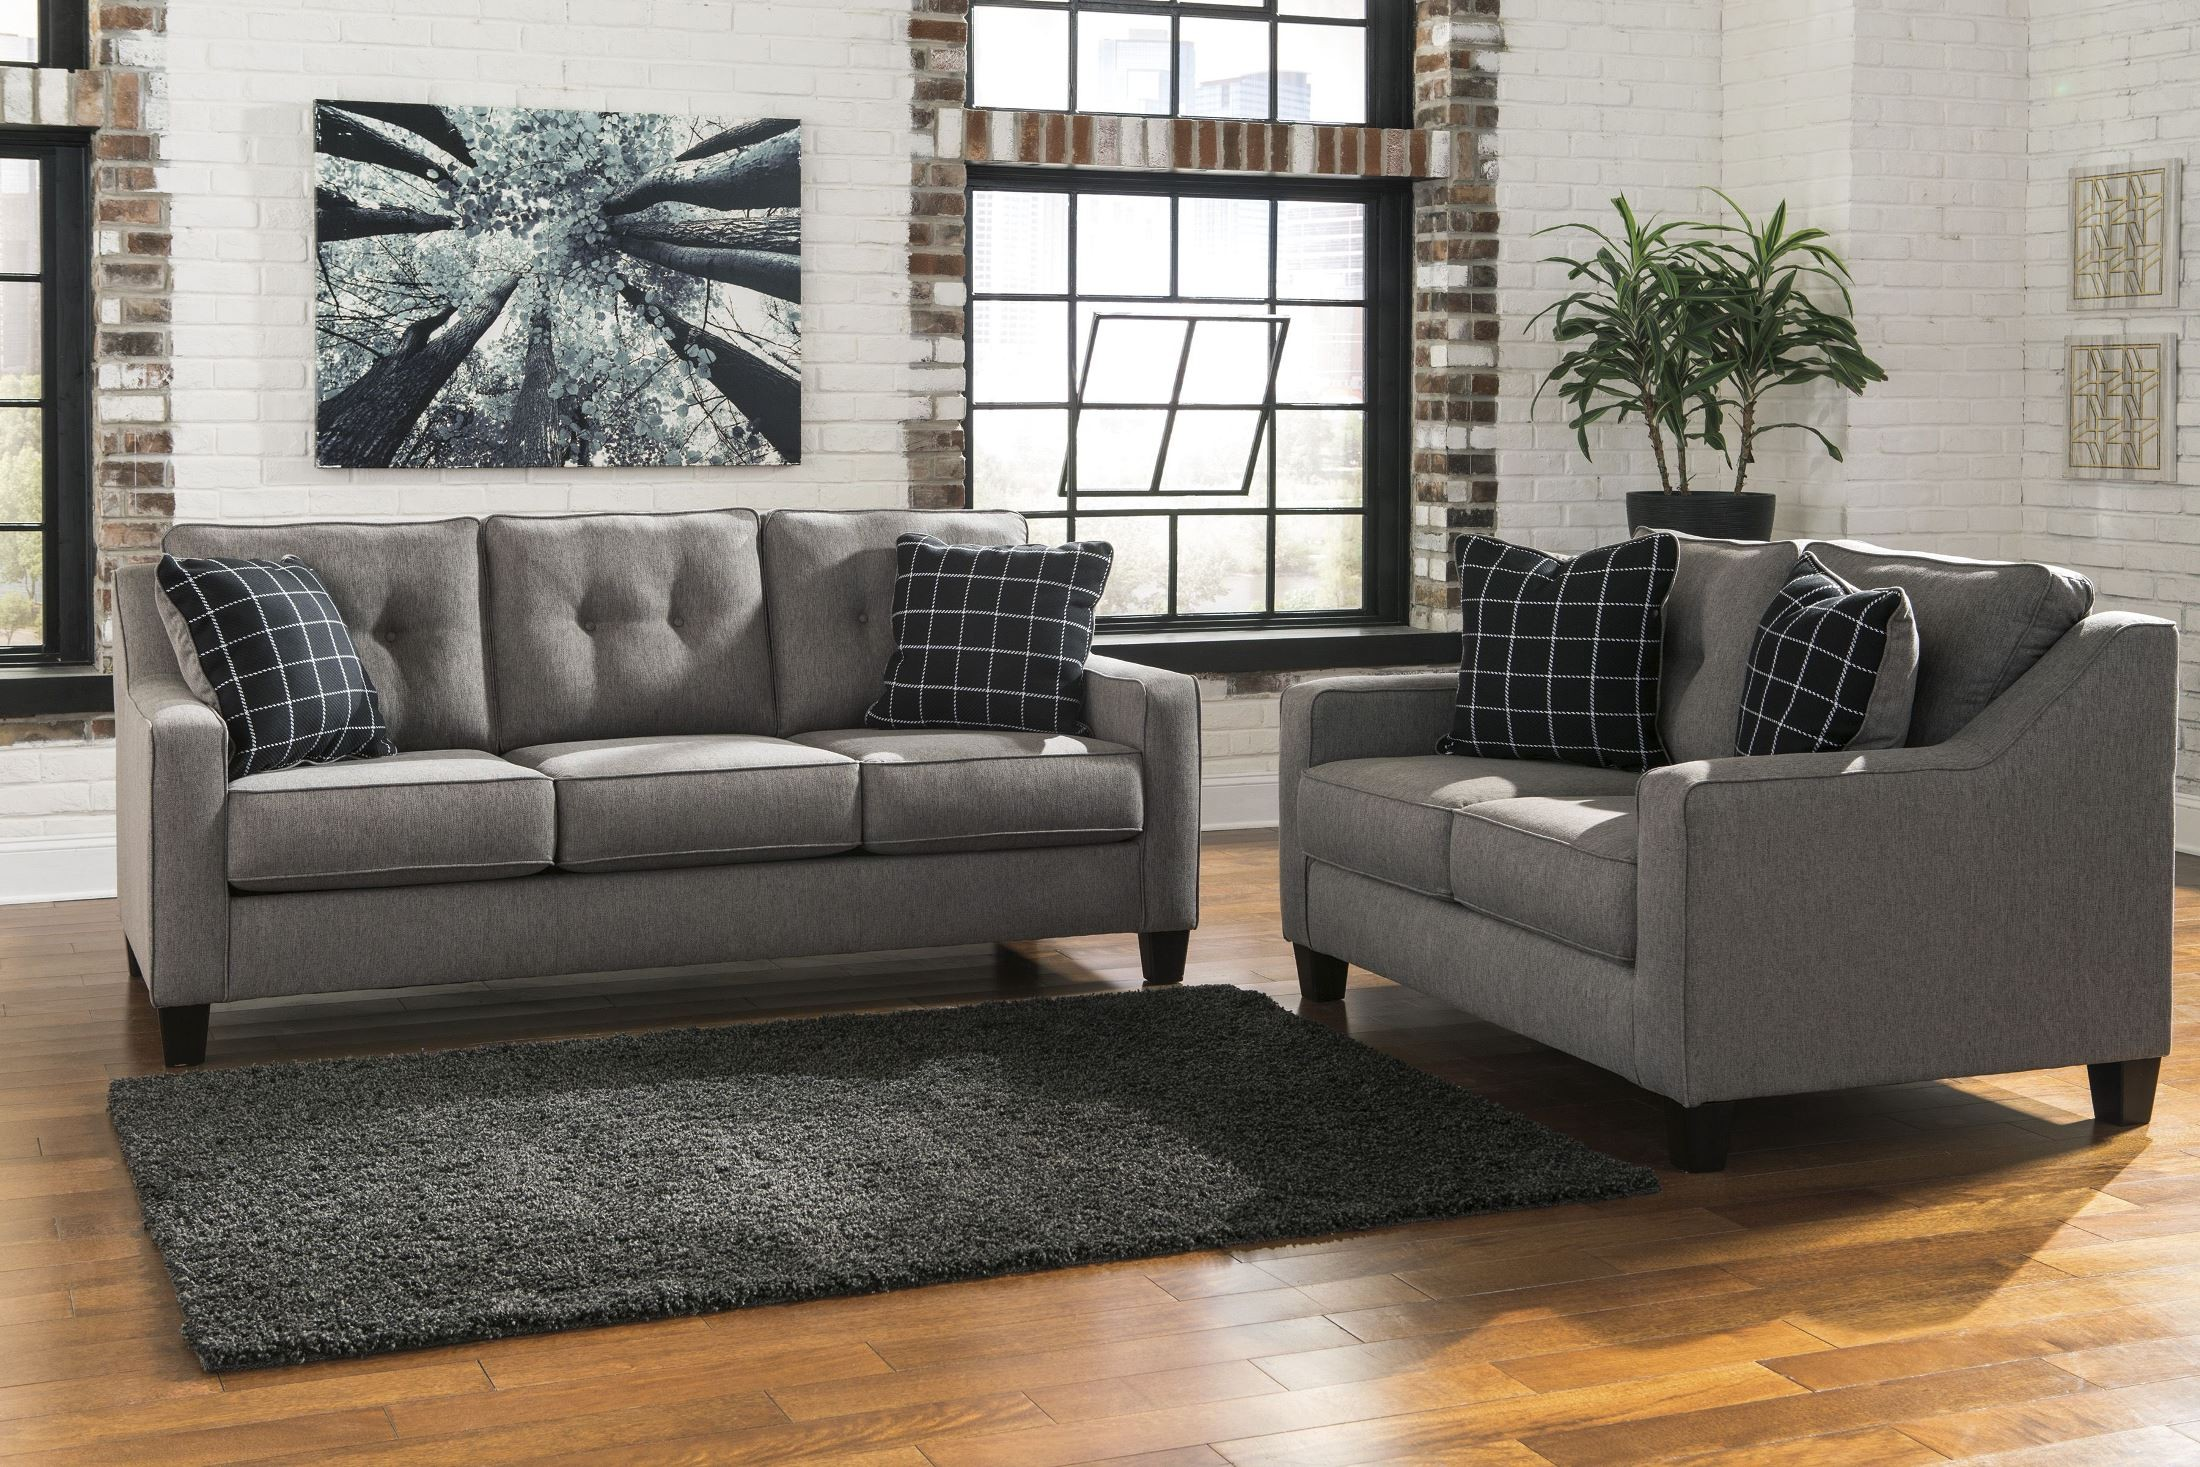 Brindon Charcoal Living Room Set From Ashley 5390138